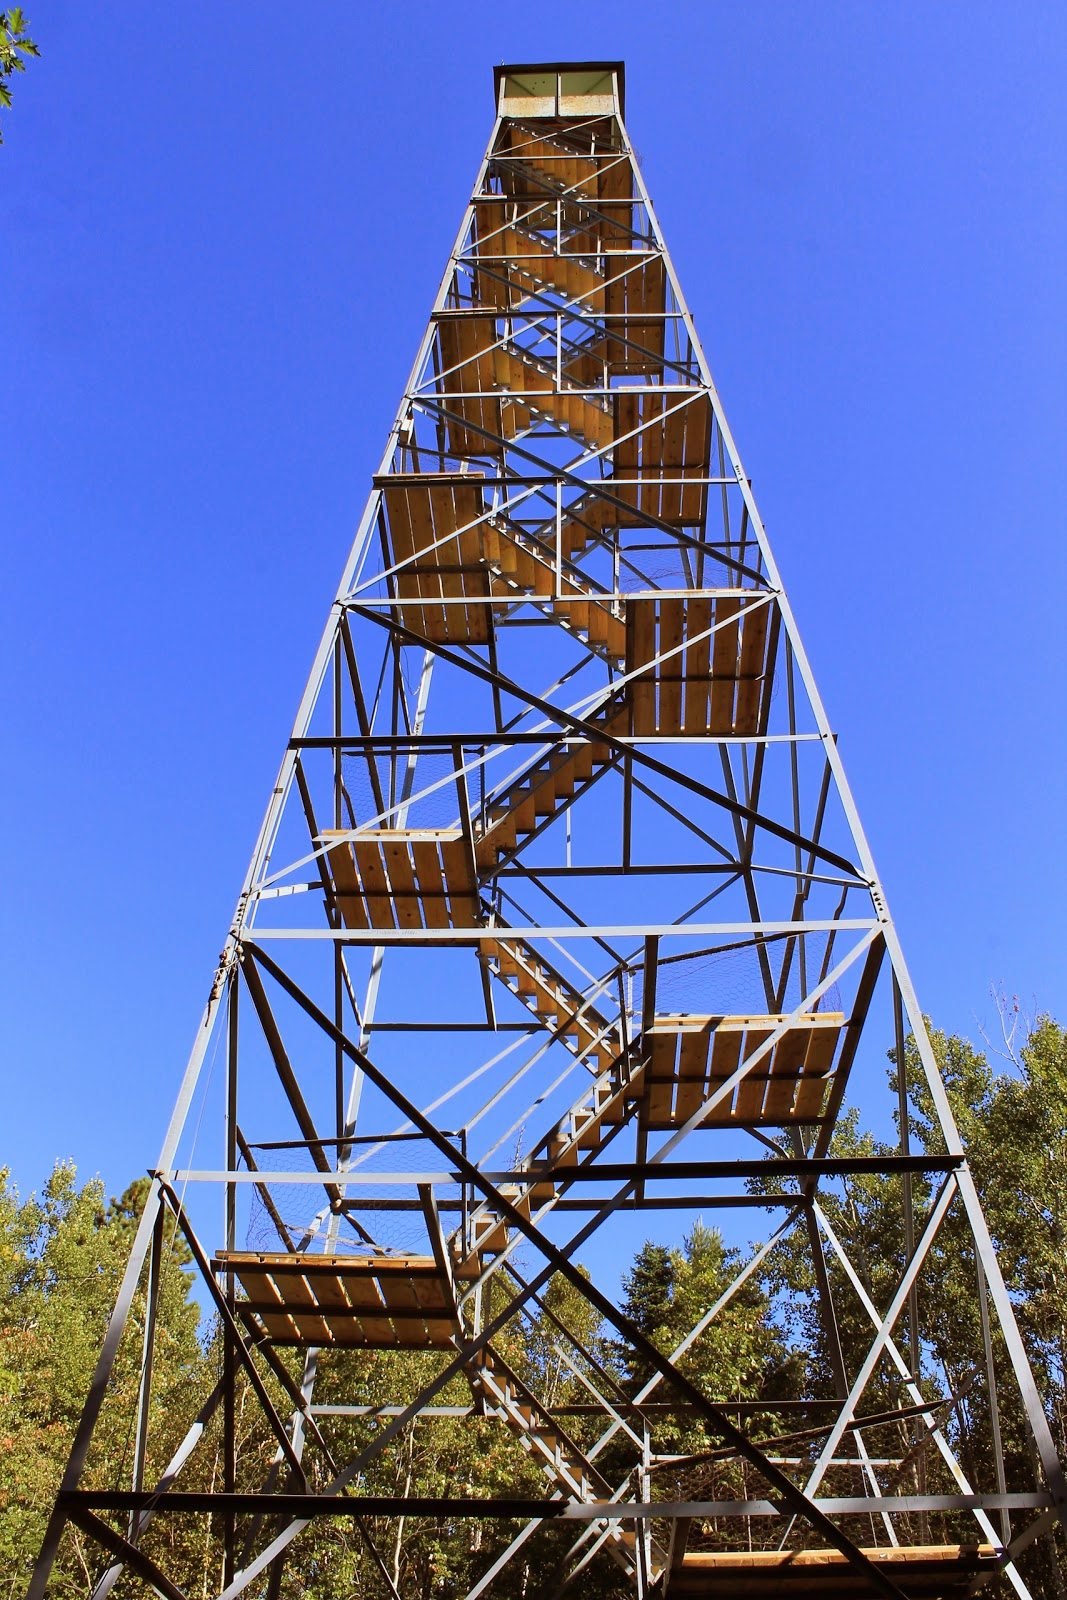 Minnesota S Historical Fire Lookout Towers Heritage